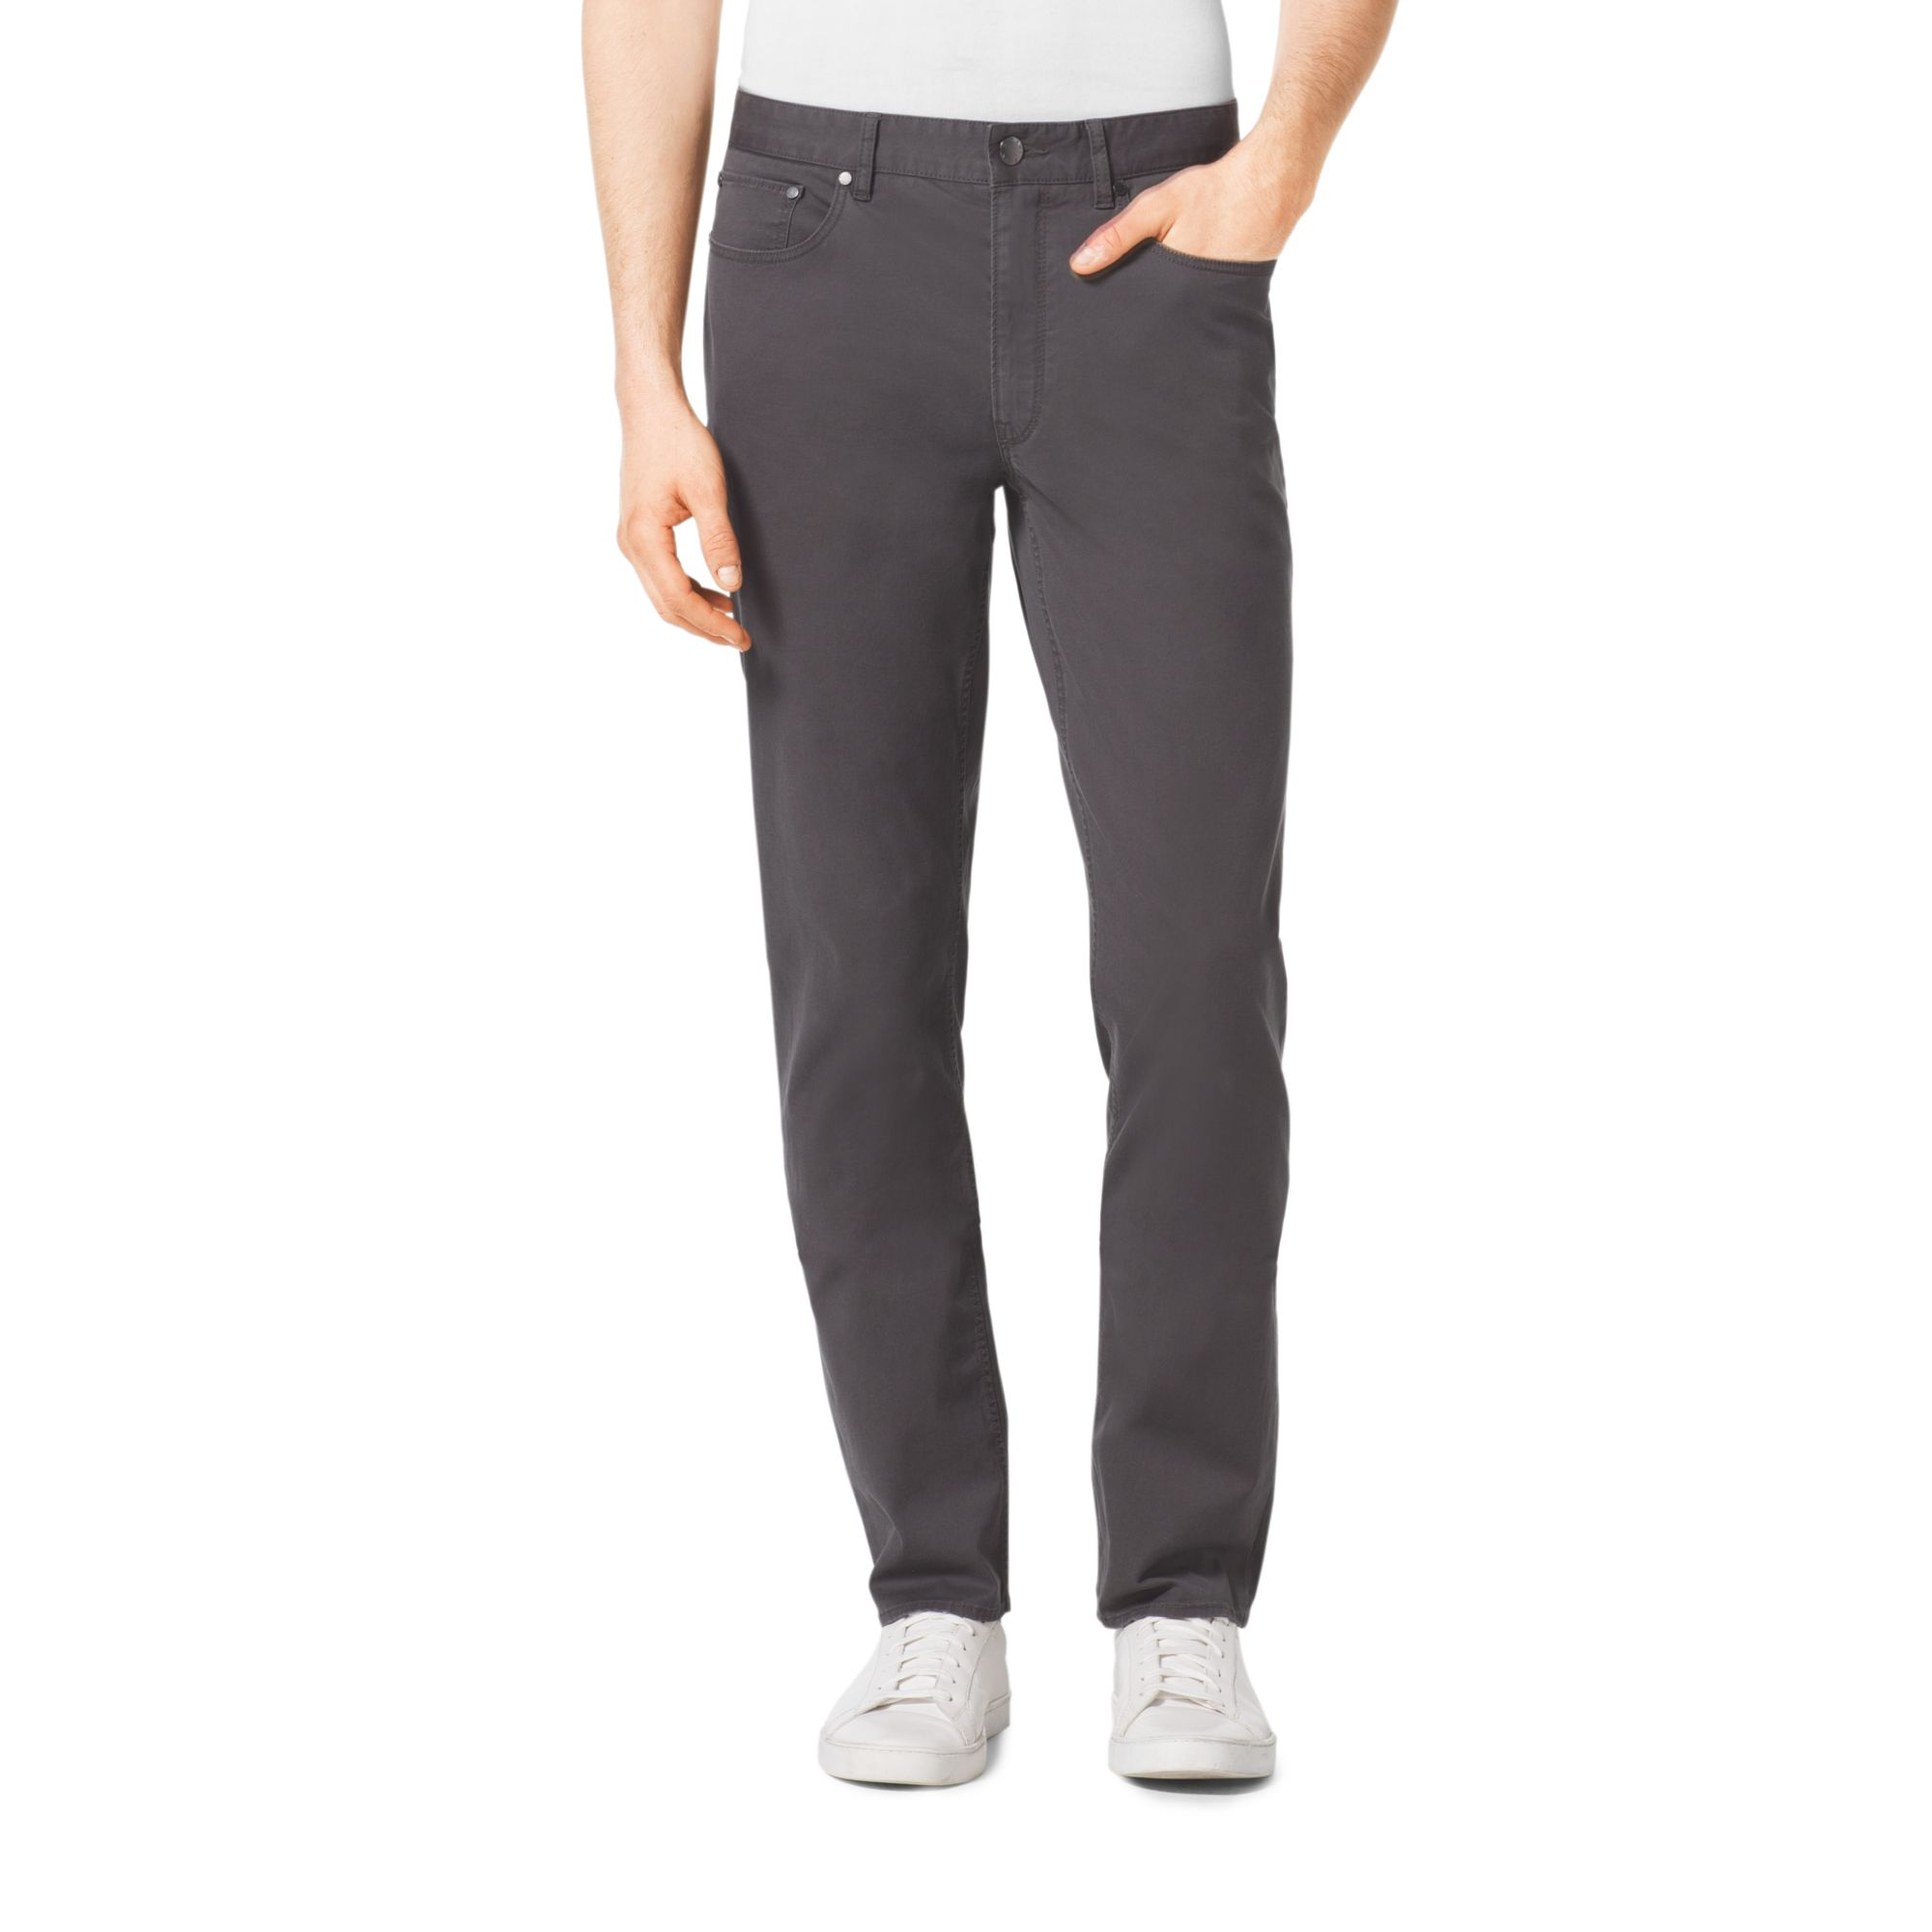 michael kors slim fit jeans in gray for men lyst. Black Bedroom Furniture Sets. Home Design Ideas